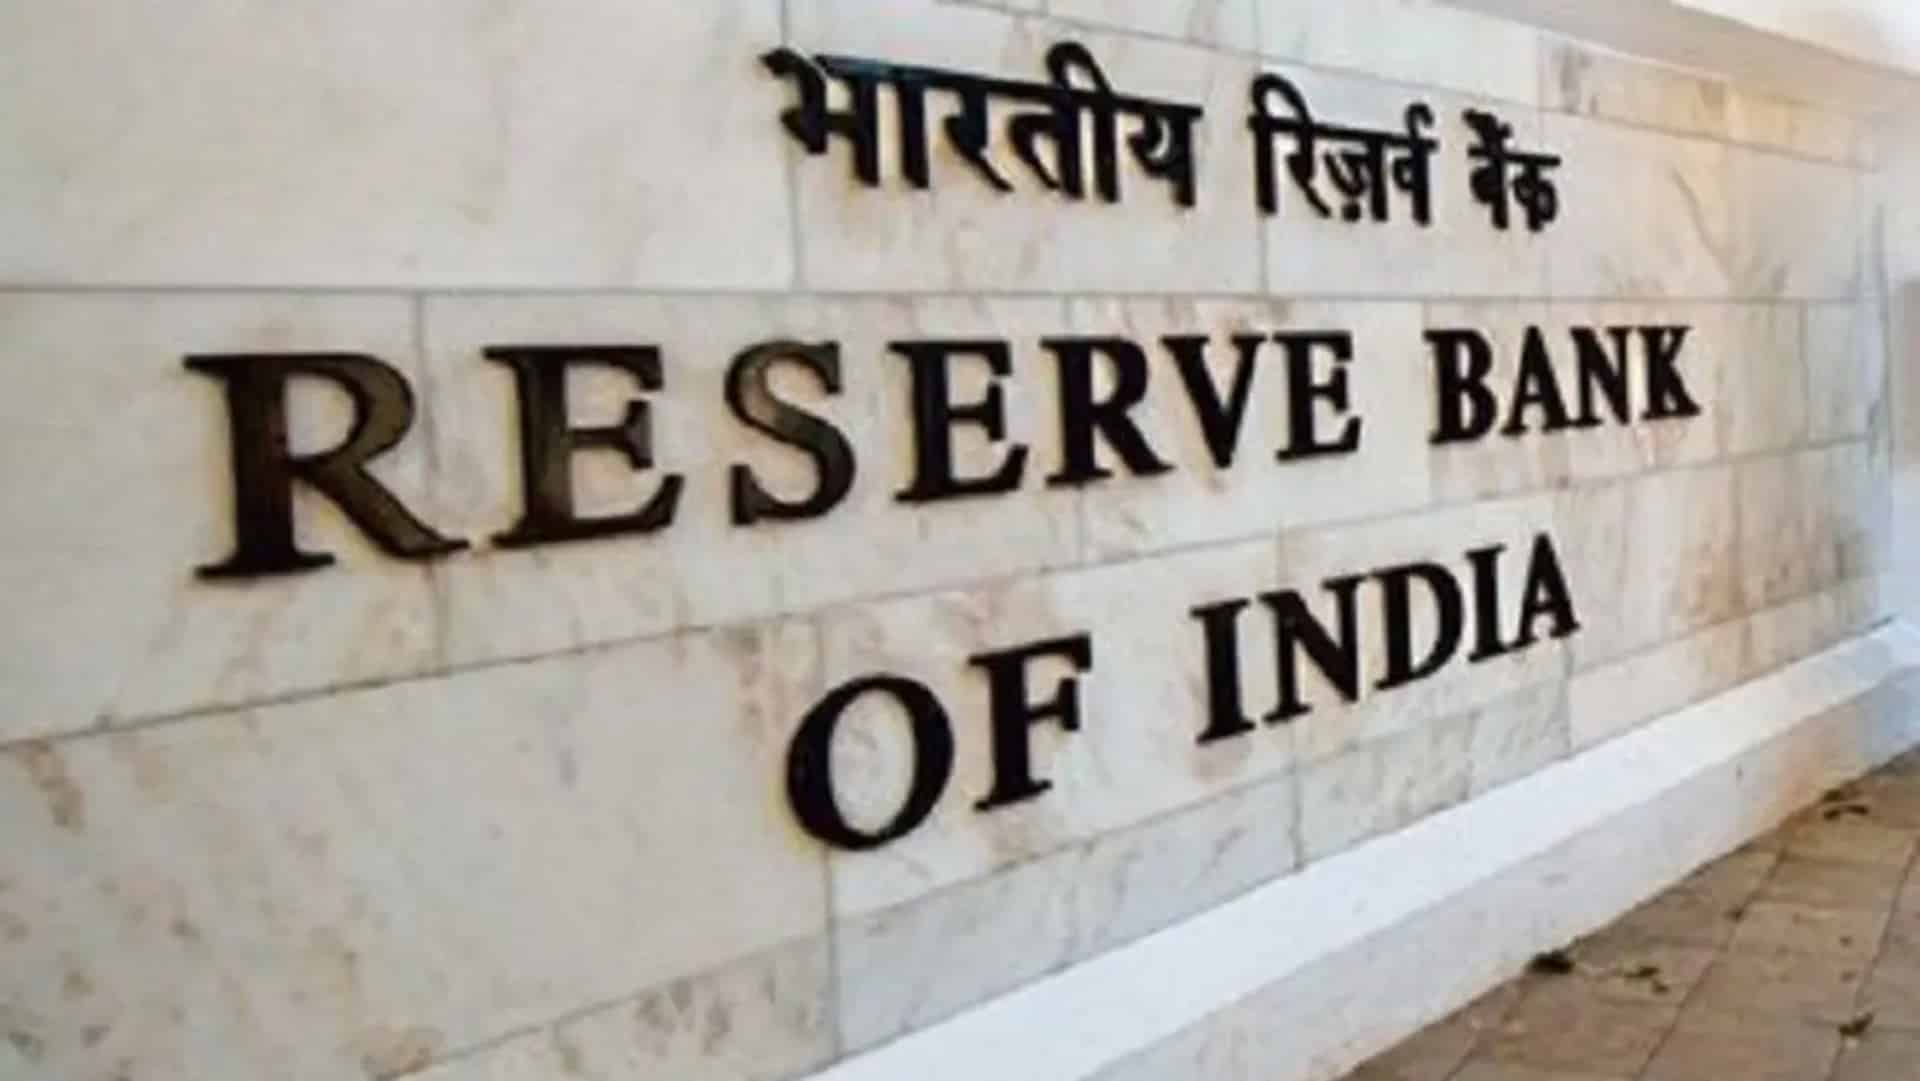 RBI asks banks to watch retail, MSME credit; shore up capital buffers